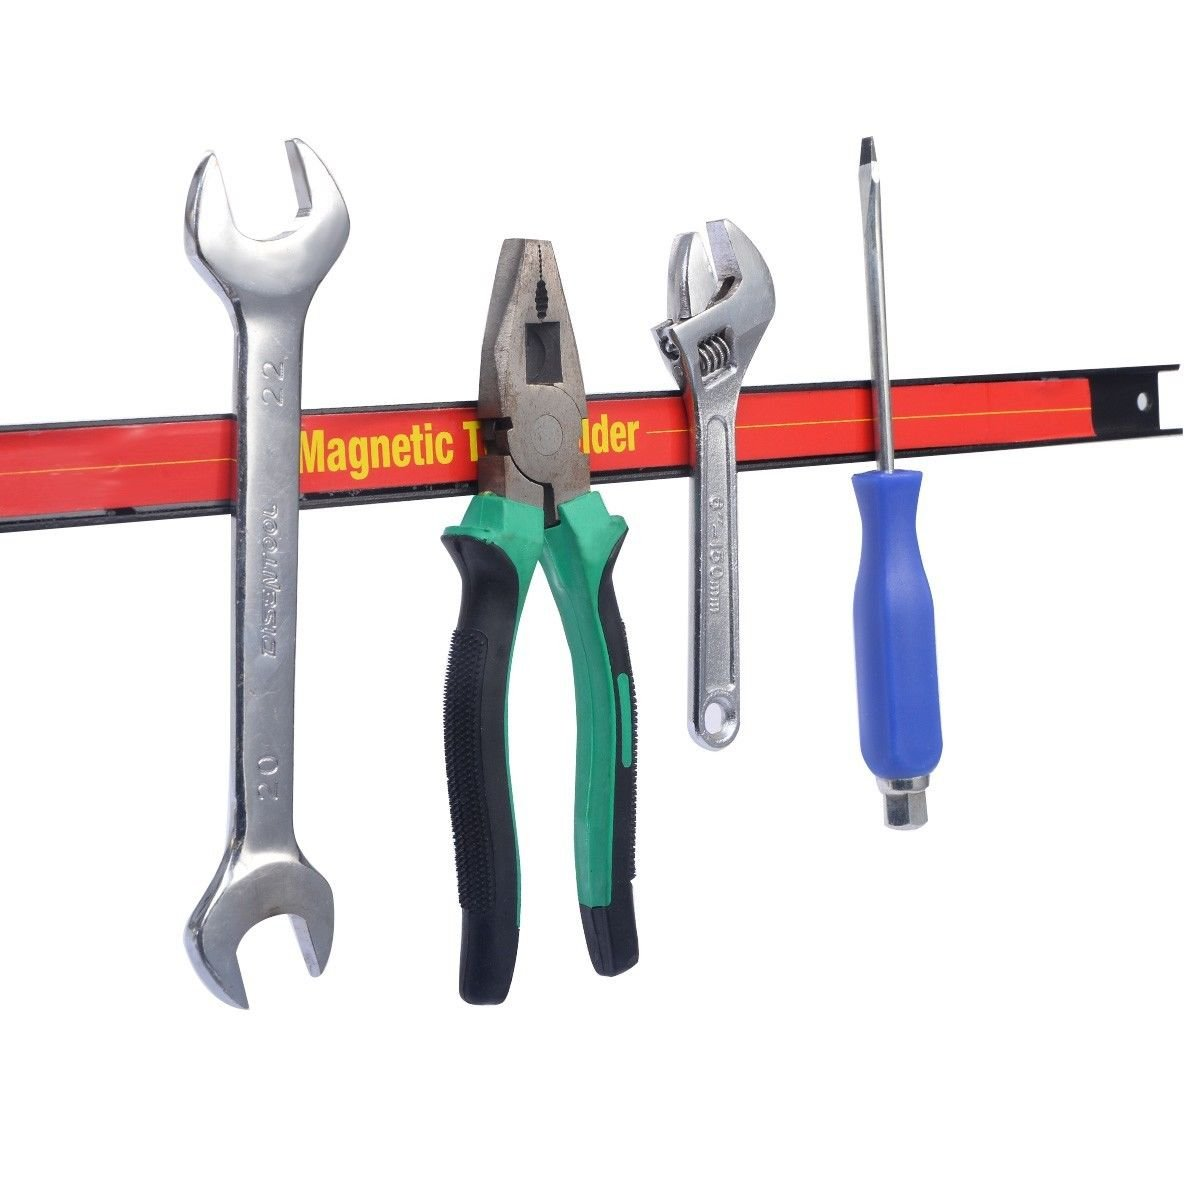 New 24''Magnetic Tool Holder Bar Organizer Storage Rack Knife Wrench Pilers Workshop by totoshop (Image #1)